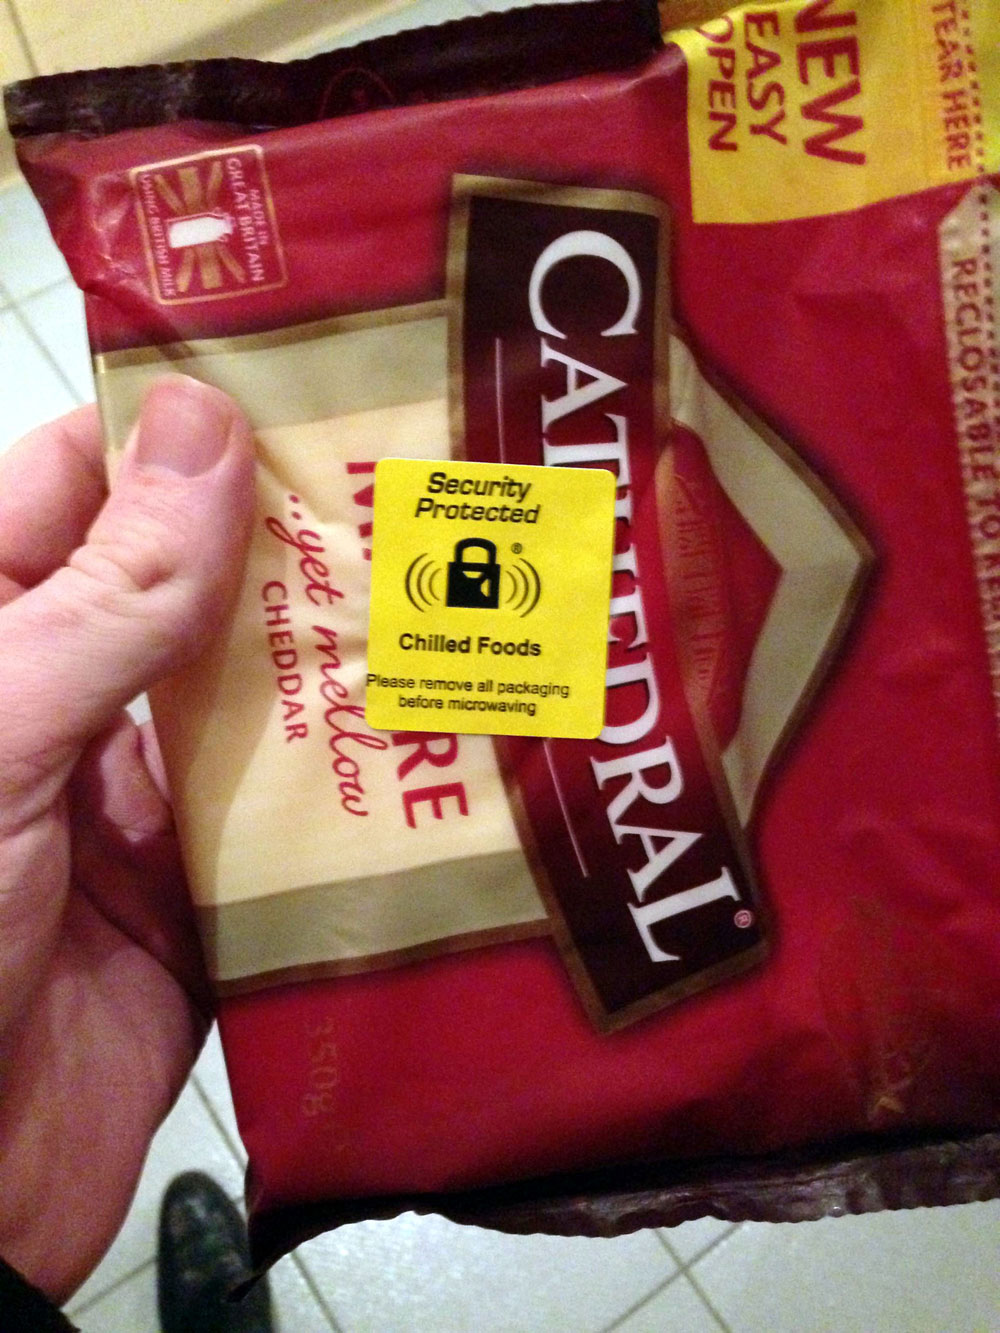 Chris was picking up spag bol ingredients when he noticed the sticker